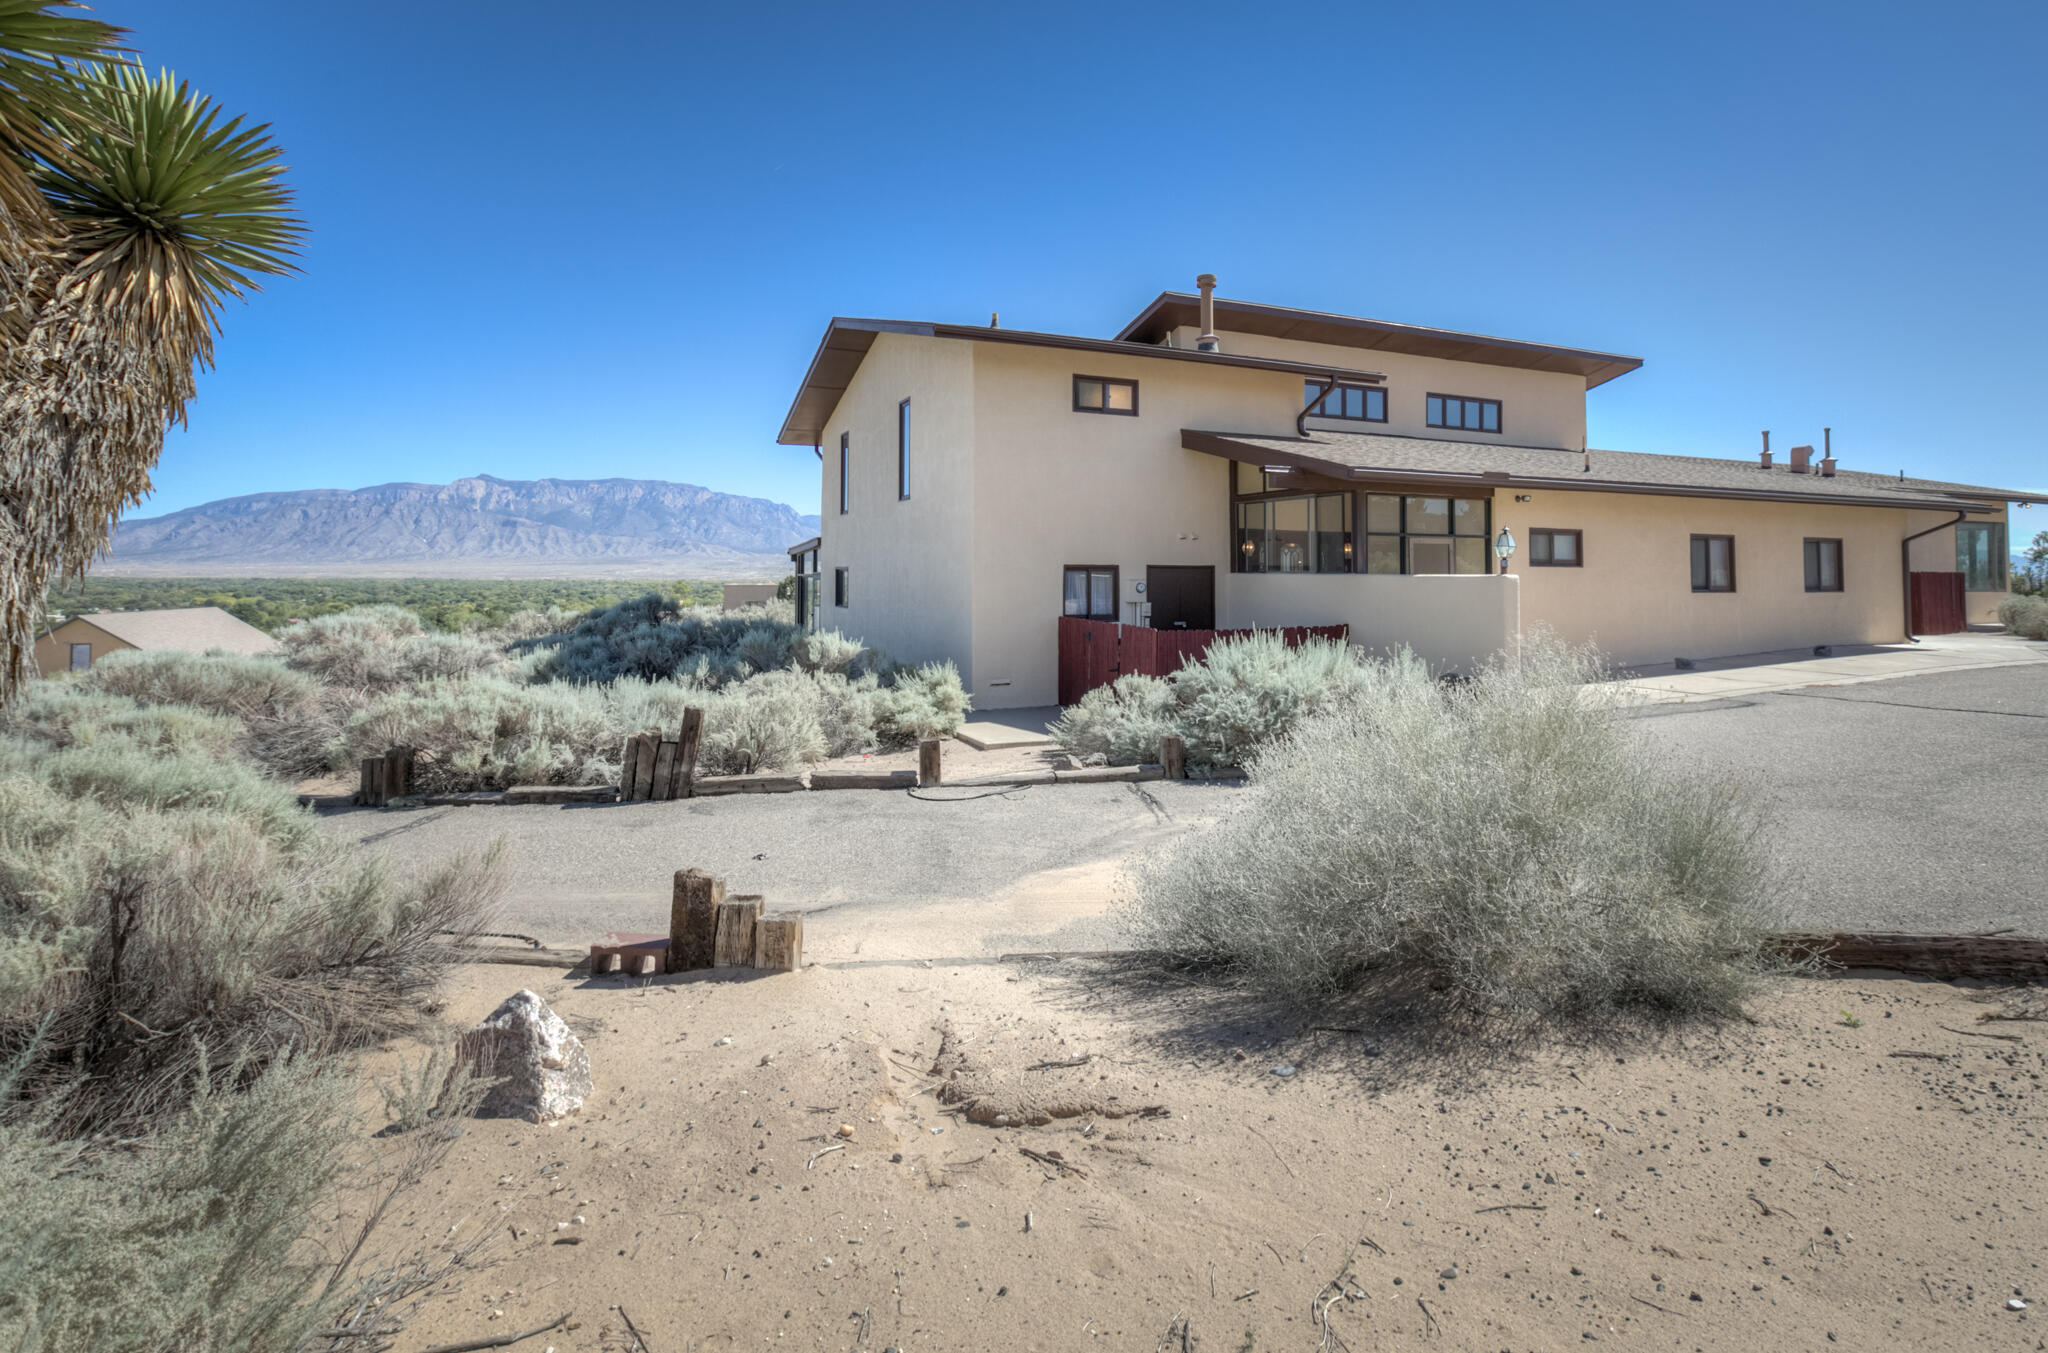 Absolutely stunning VIEWS of the Sandias, Santa Fe & Downtown from this custom built Corrales property!  Situated on 1+ acres and features: Huge great room w/ cathedral ceilings, wet bar & wood burning stove, Large kitchen w/ new double ovens & cooktop, desk, island & pantry, Owner's Suite w/ balcony & gorgeous views, Spacious 2nd & 3rd bedrooms, Massive in-law suite or hobby room w/ wet bar, full bath & separate entrance, Custom oak cabinetry, Picture windows, New well in 2020, Refrigerated air AND an amazing, oversized 4 CAR GARAGE w/ a bathroom & storage/tool room in addition to a Carport.  Don't miss this one!!!